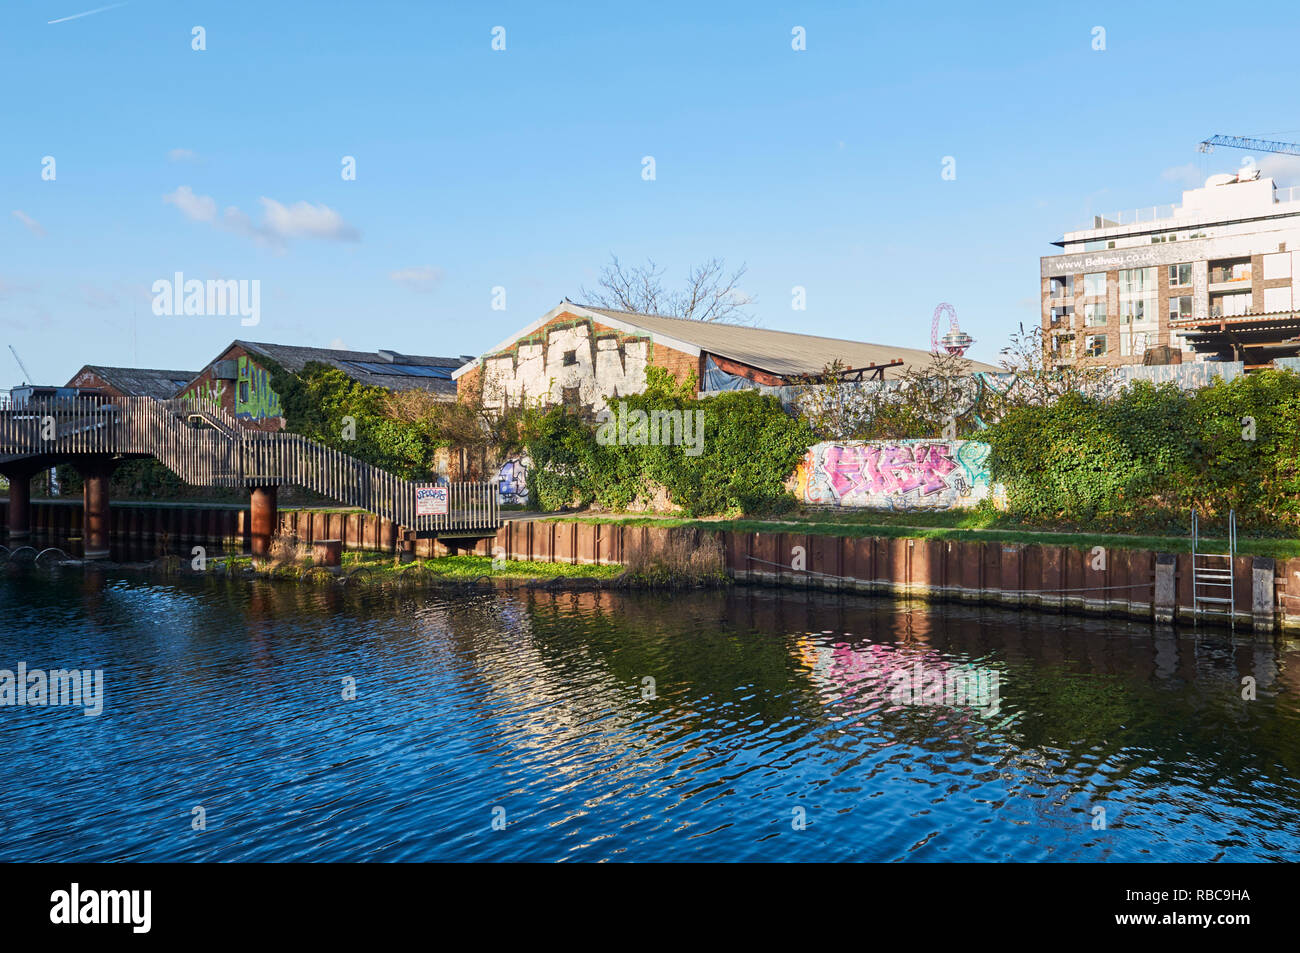 Old warehouses on the River Lea near Bromley-By-Bow, East London UK - Stock Image